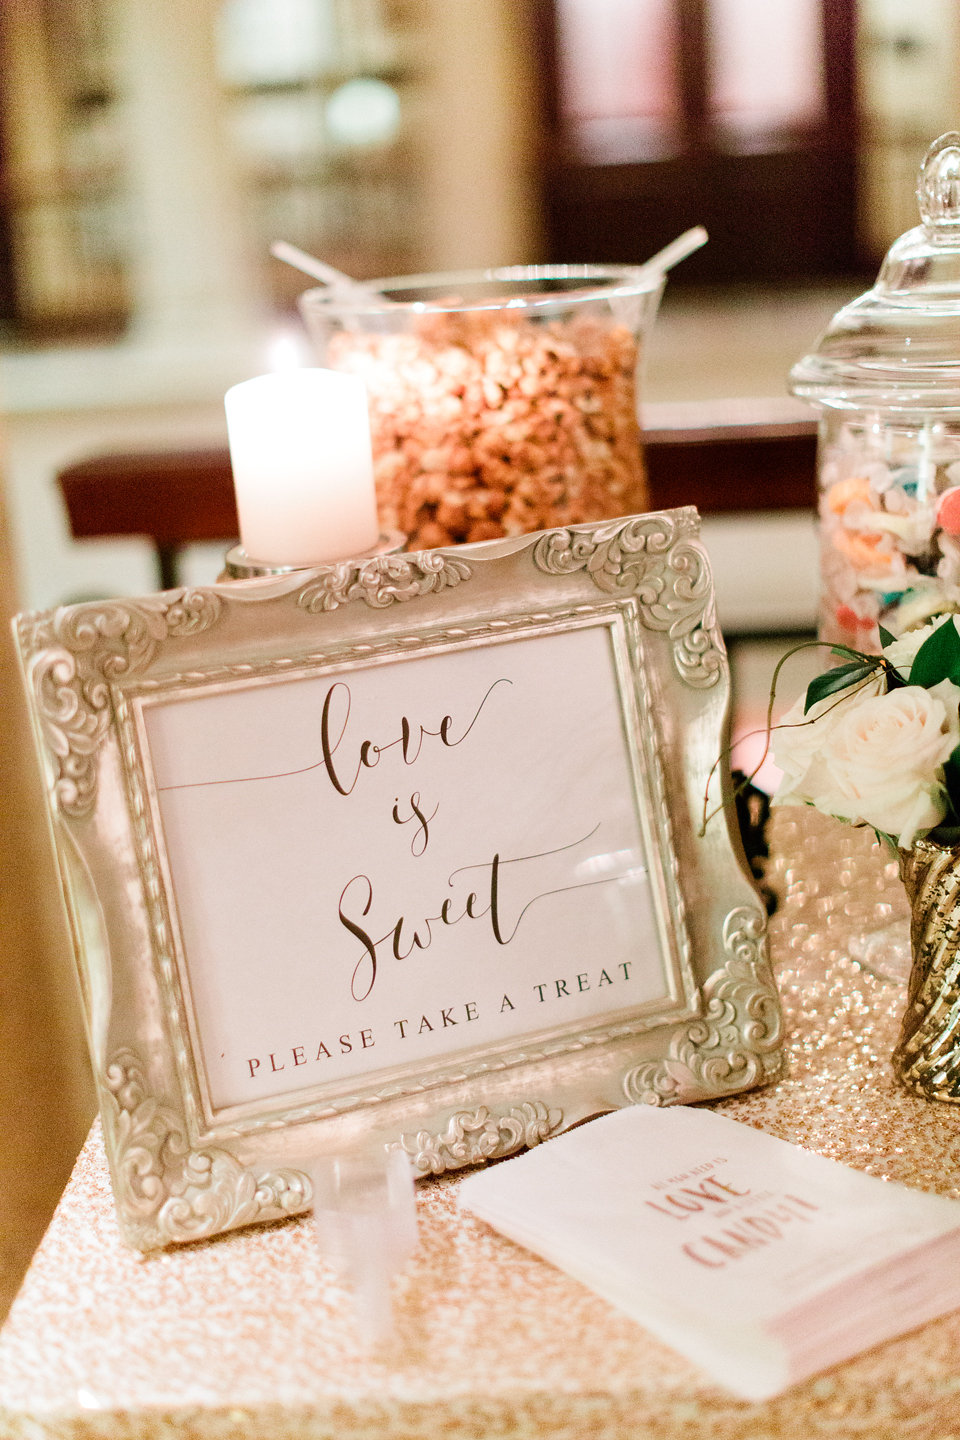 Something Sweet Candy Dessert Buffet Display  Blush Wedding at TPC Sawgrass Wedding Ponte Vedra Beach  Jacksonville Wedding Planner Blue Ribbon Weddings  Jacksonville Wedding Photographer Debra Eby Photography  Wedding Ceremony & Reception at TPC Sawgrass Jacksonville